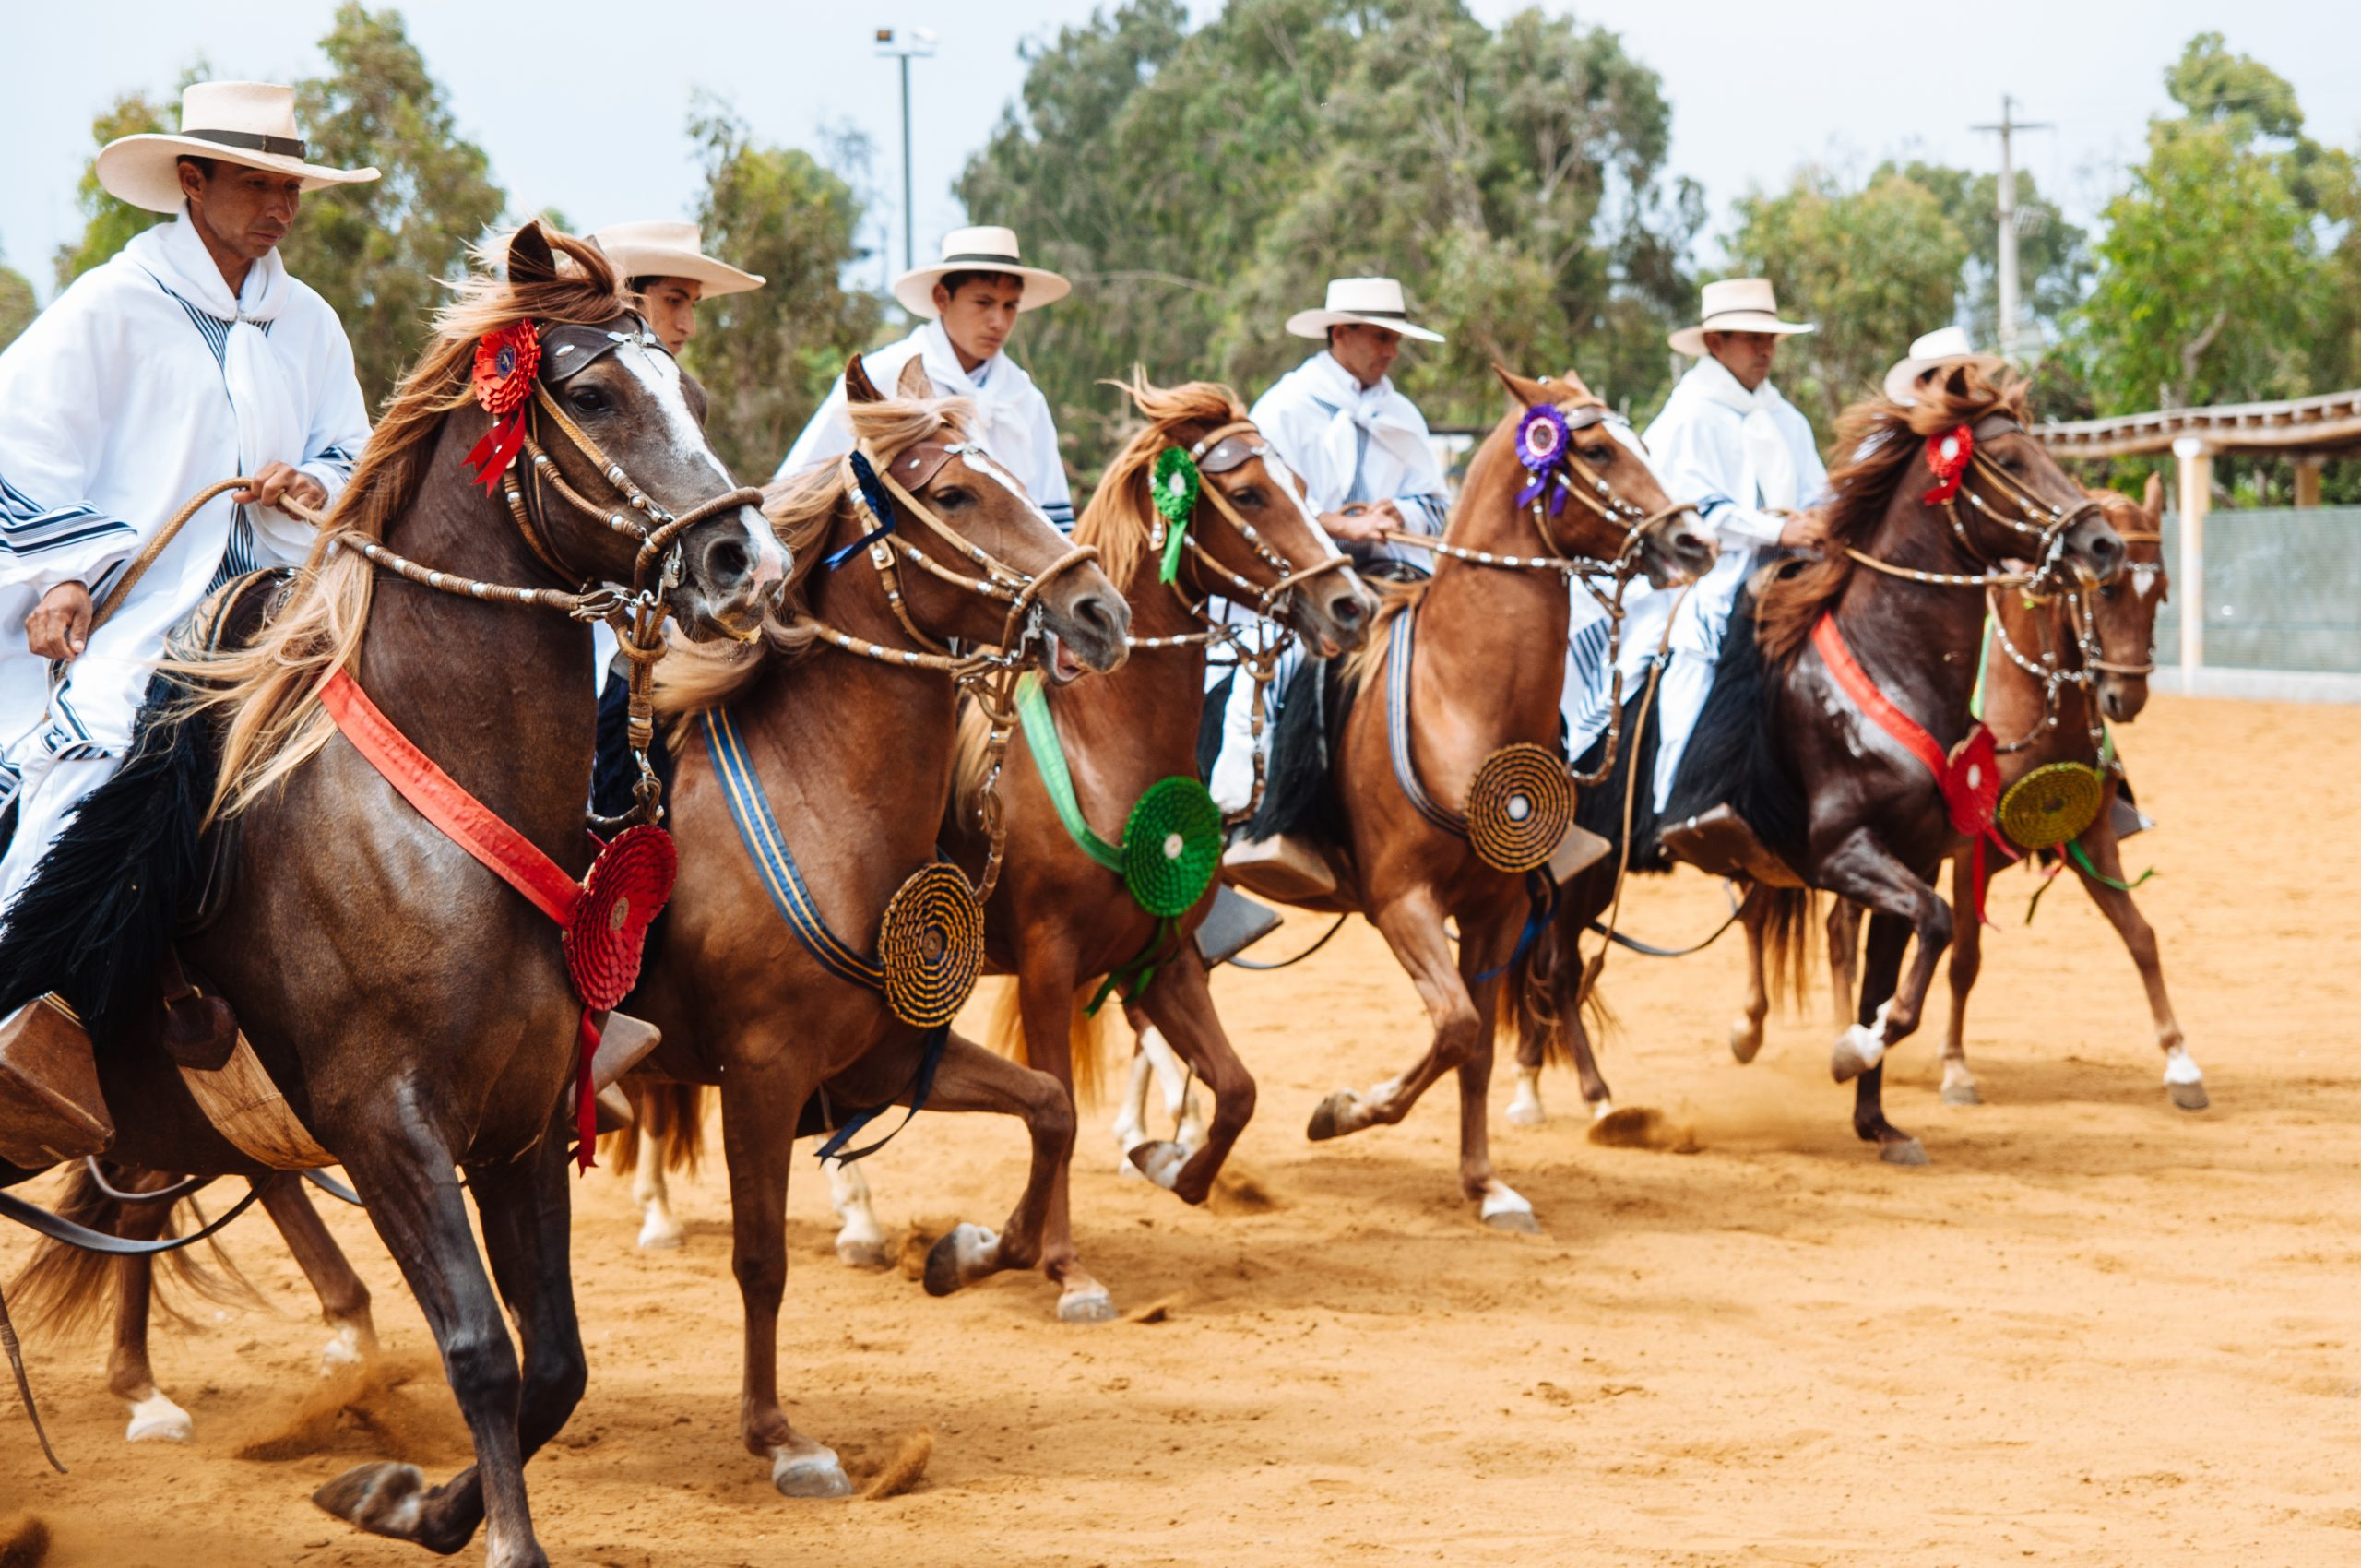 The skilled Peruvian Paso Horse